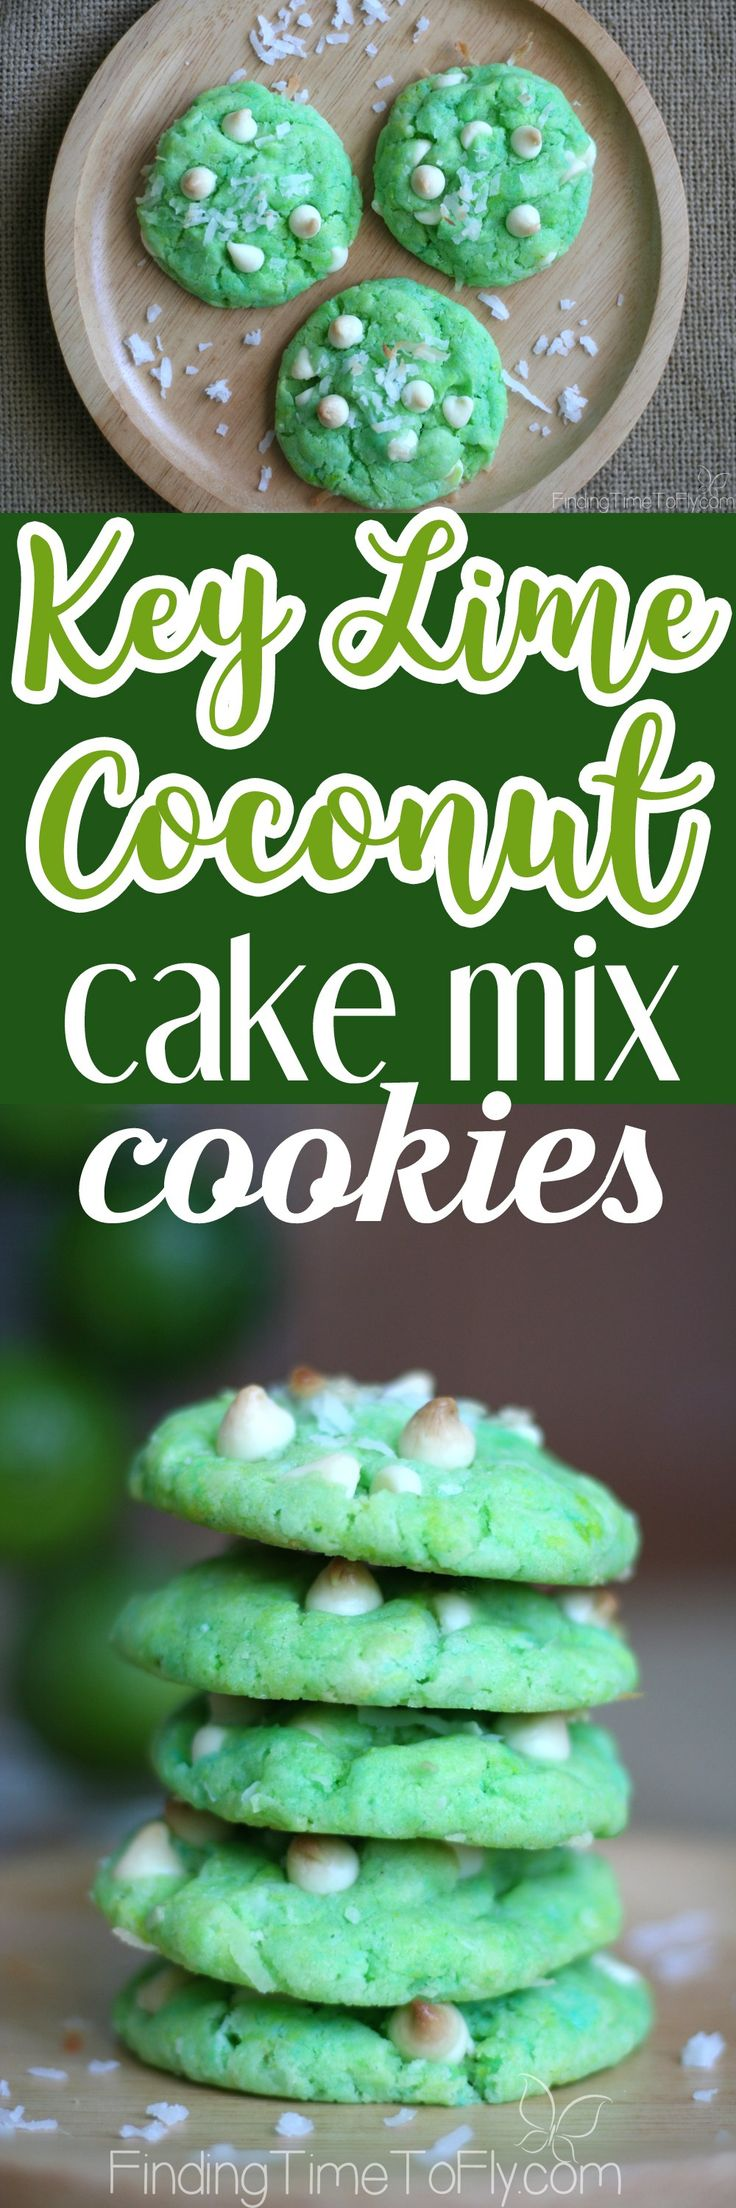 These soft baked Key Lime Coconut Cake Mix Pudding Cookies would be perfect for a St. Patrick's Day or Easter dessert. So easy to make, too!